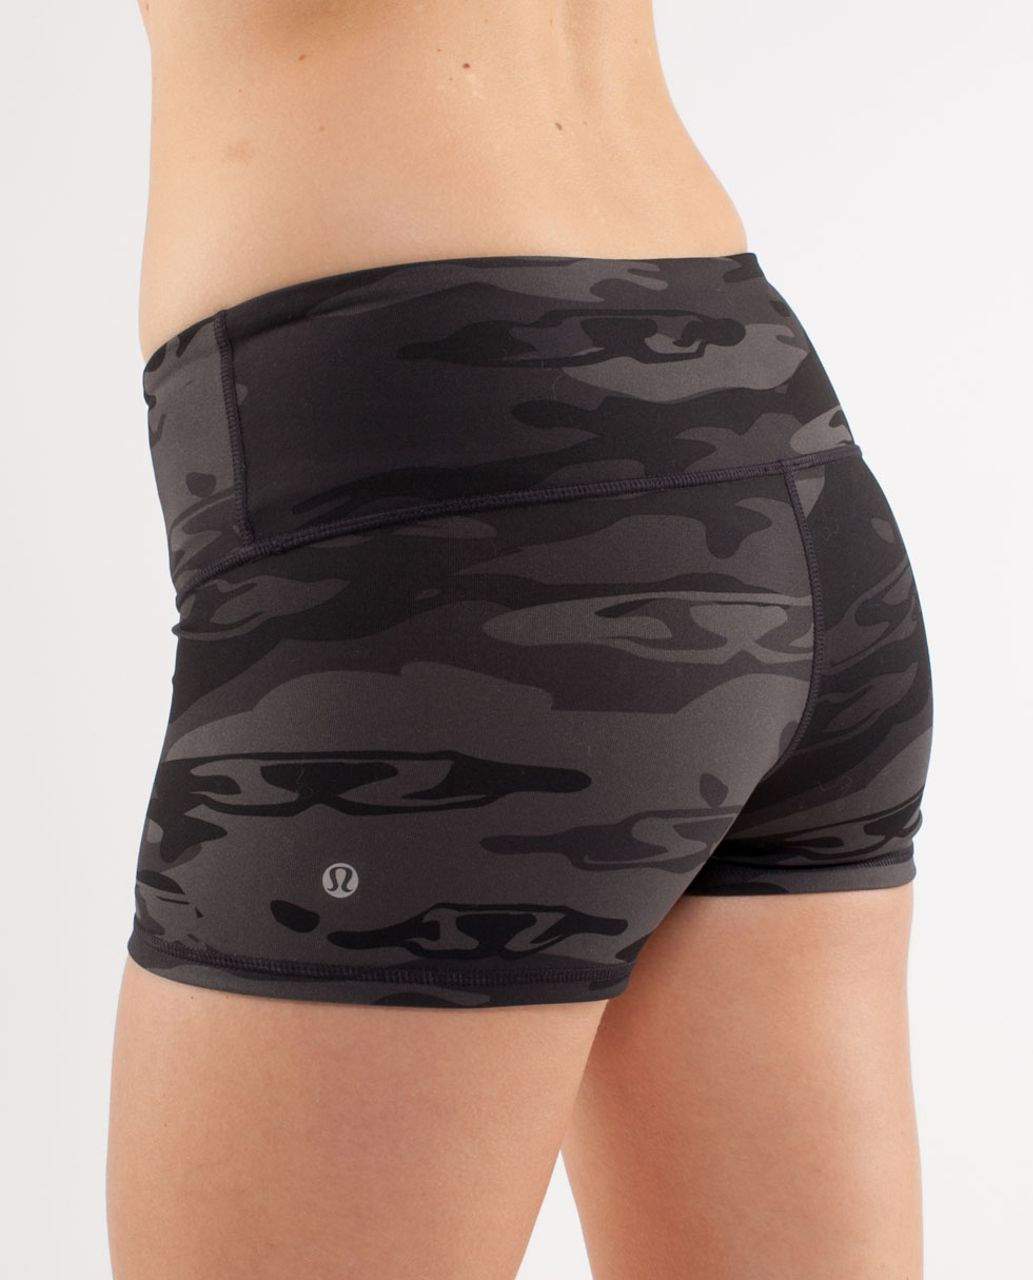 Lululemon Boogie Short - Black /  Retro Camo